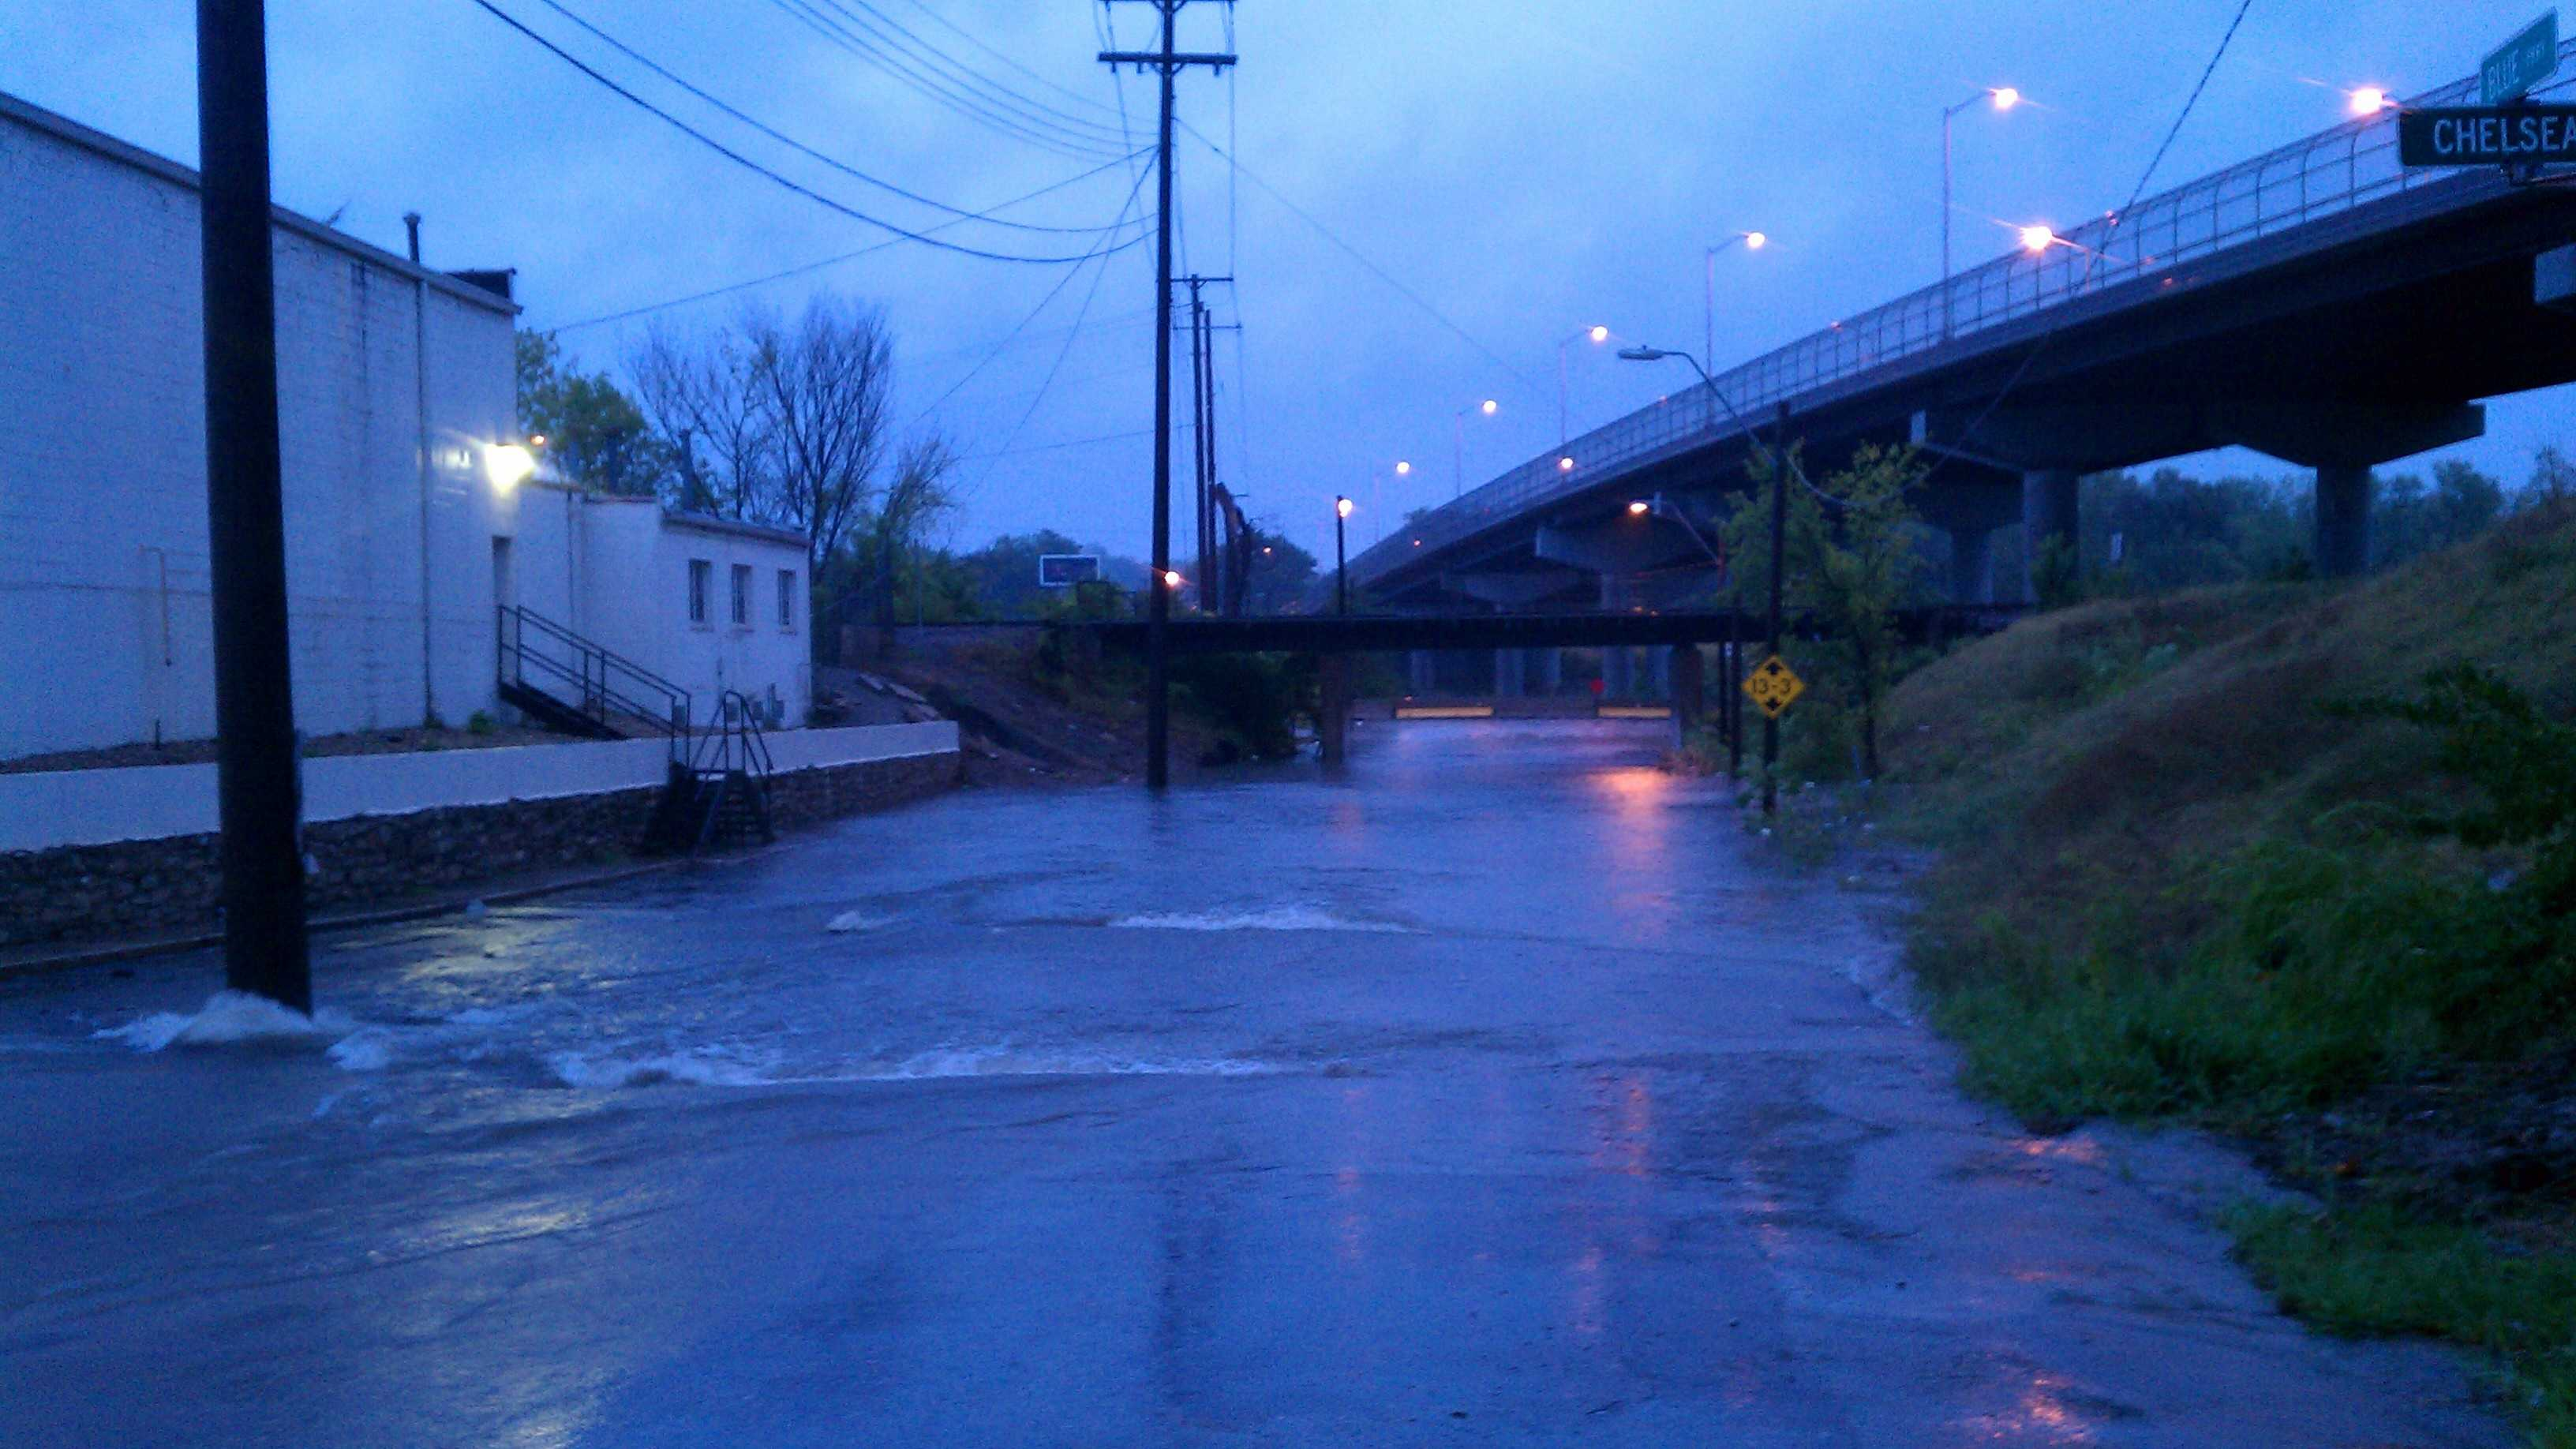 Water over the road at Chelsea and Blue Parkway